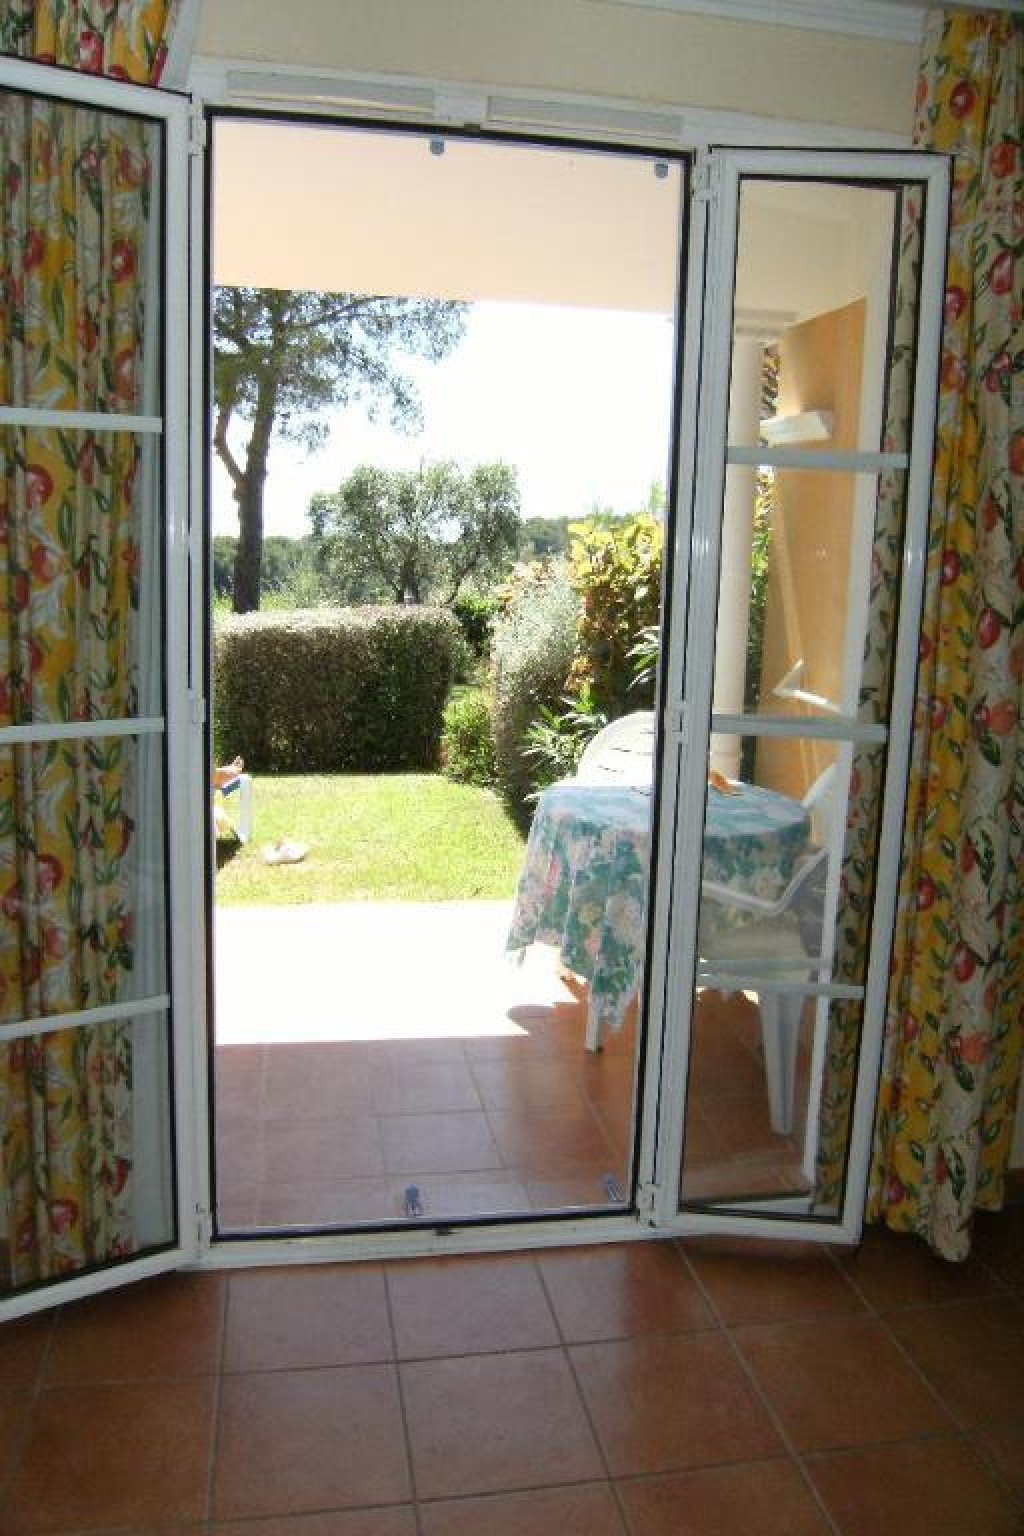 Apartment Stage Garden level, View Sea, position south west, General condition Good, Kitchen Fitted, ...